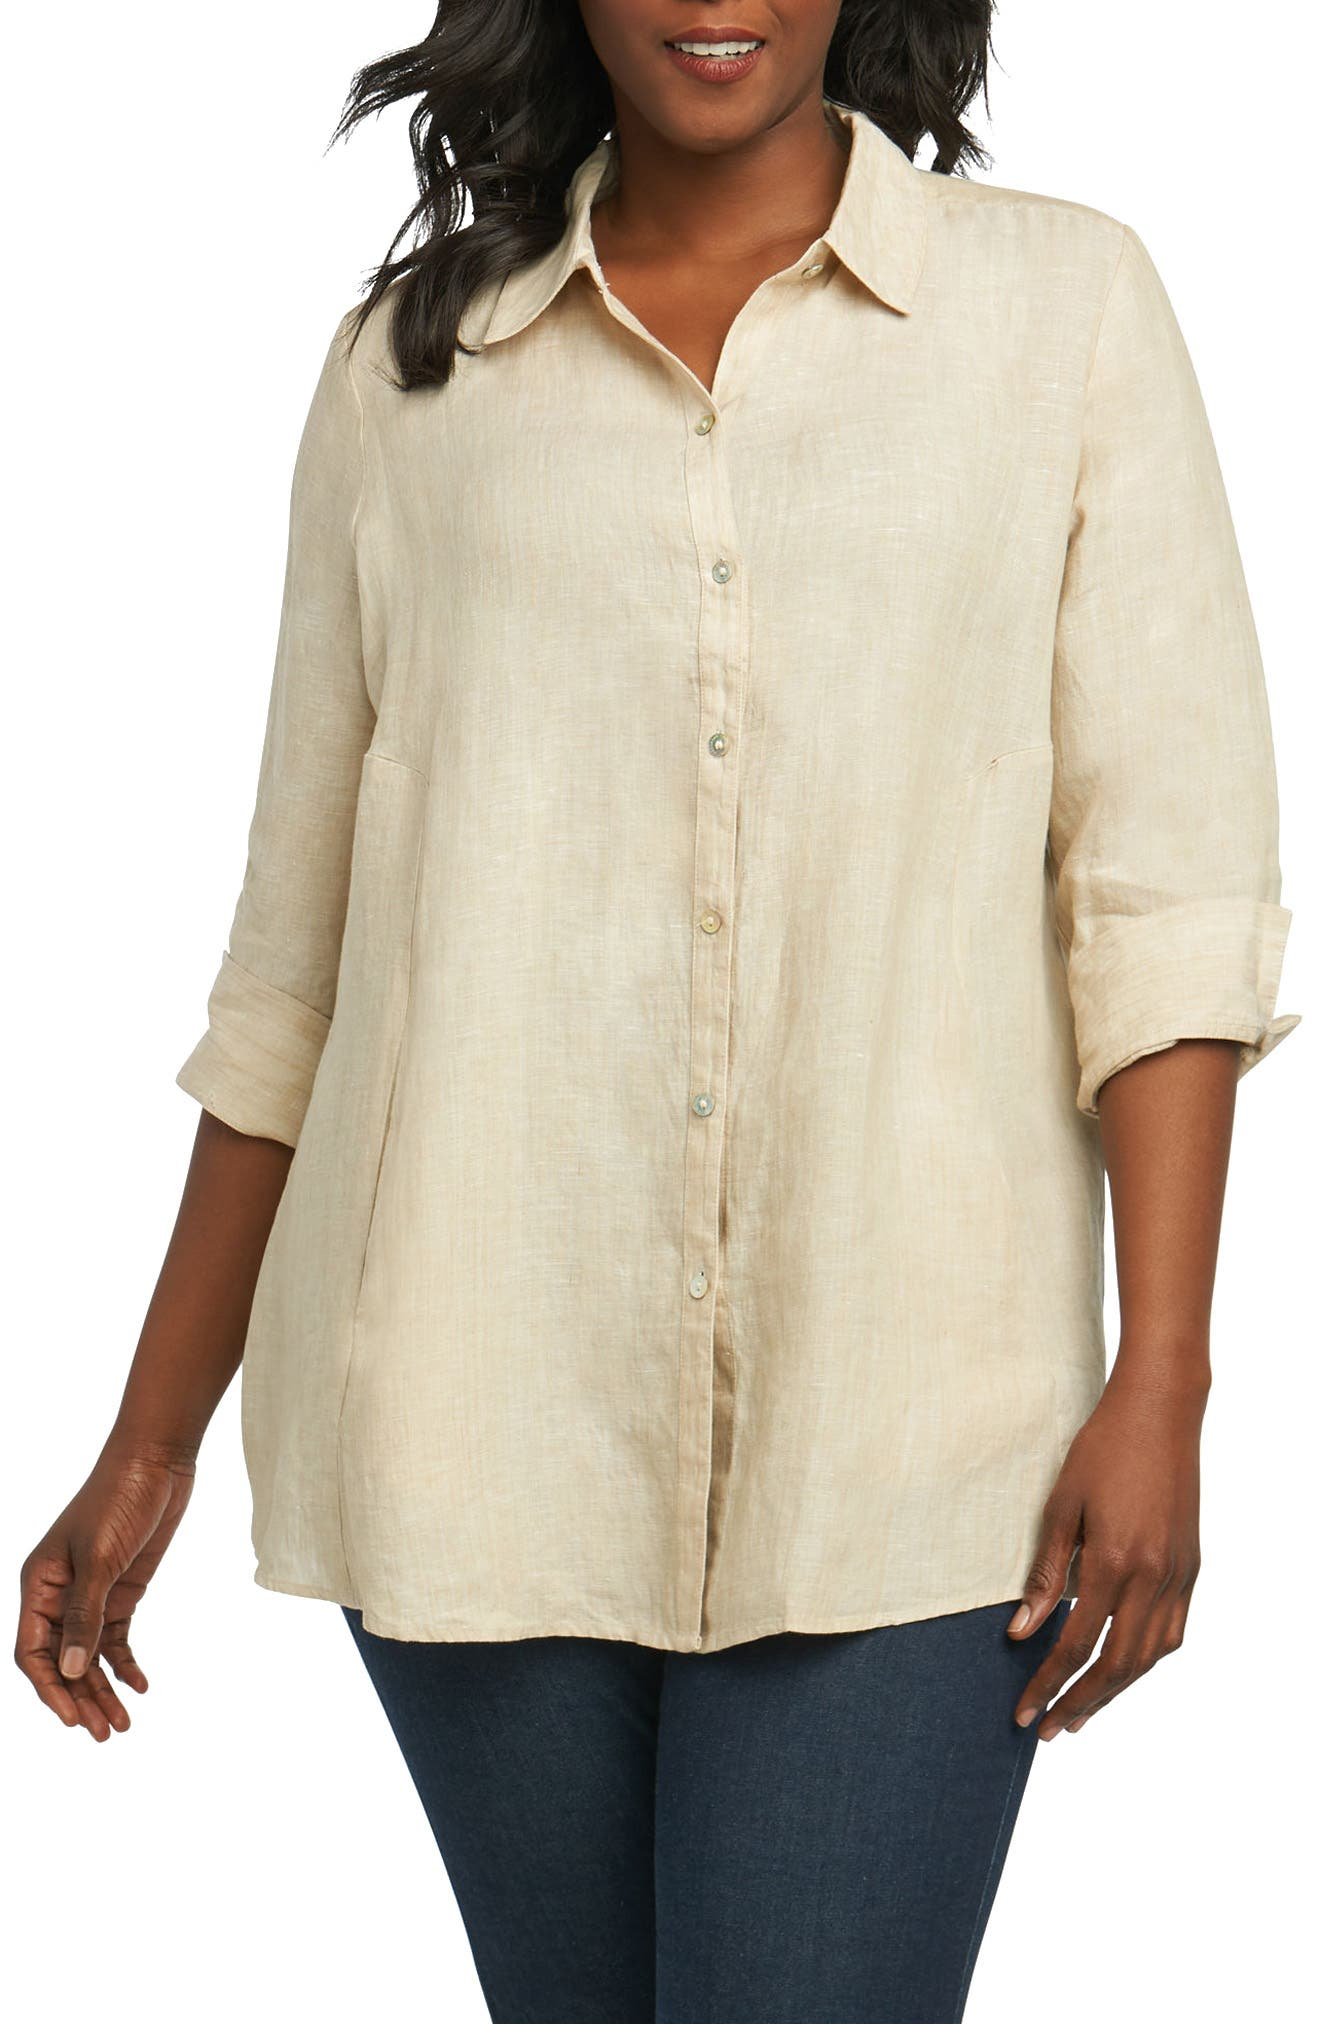 Alternate Image 1 Selected - Foxcroft Cici Linen Chambray Shirt (Plus Size)